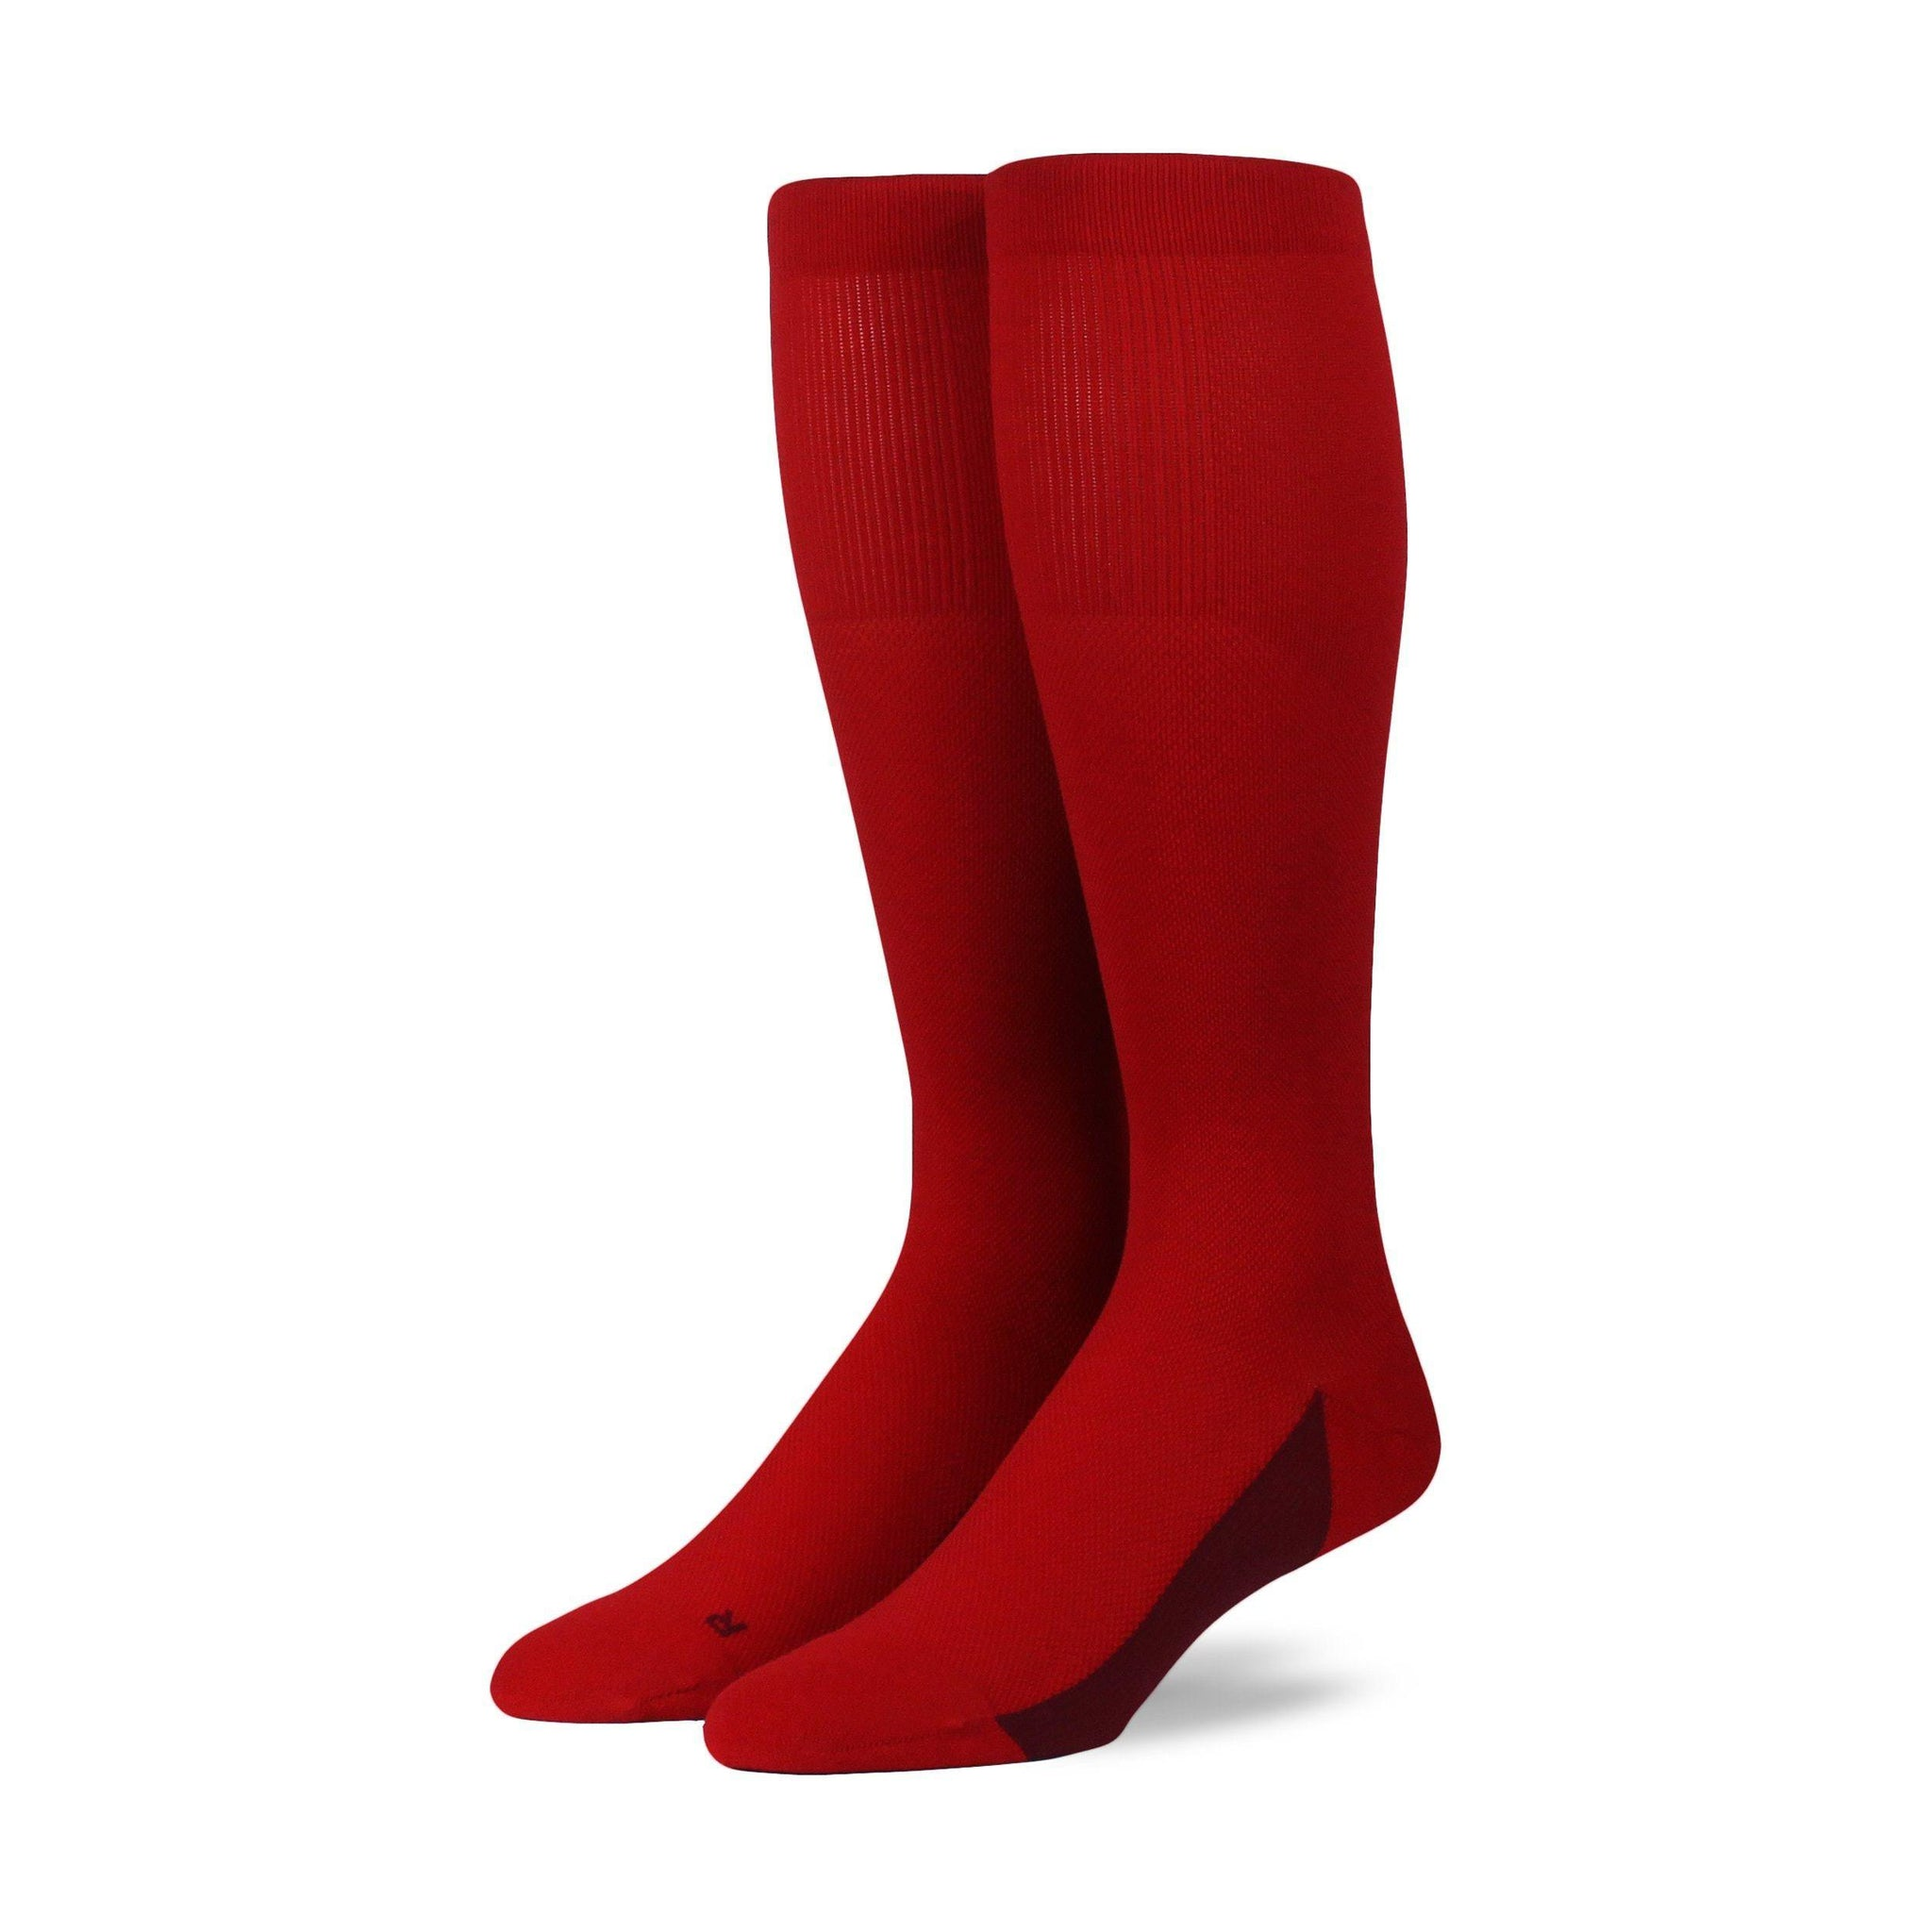 Endurance OTC - Graduated Compression Socks